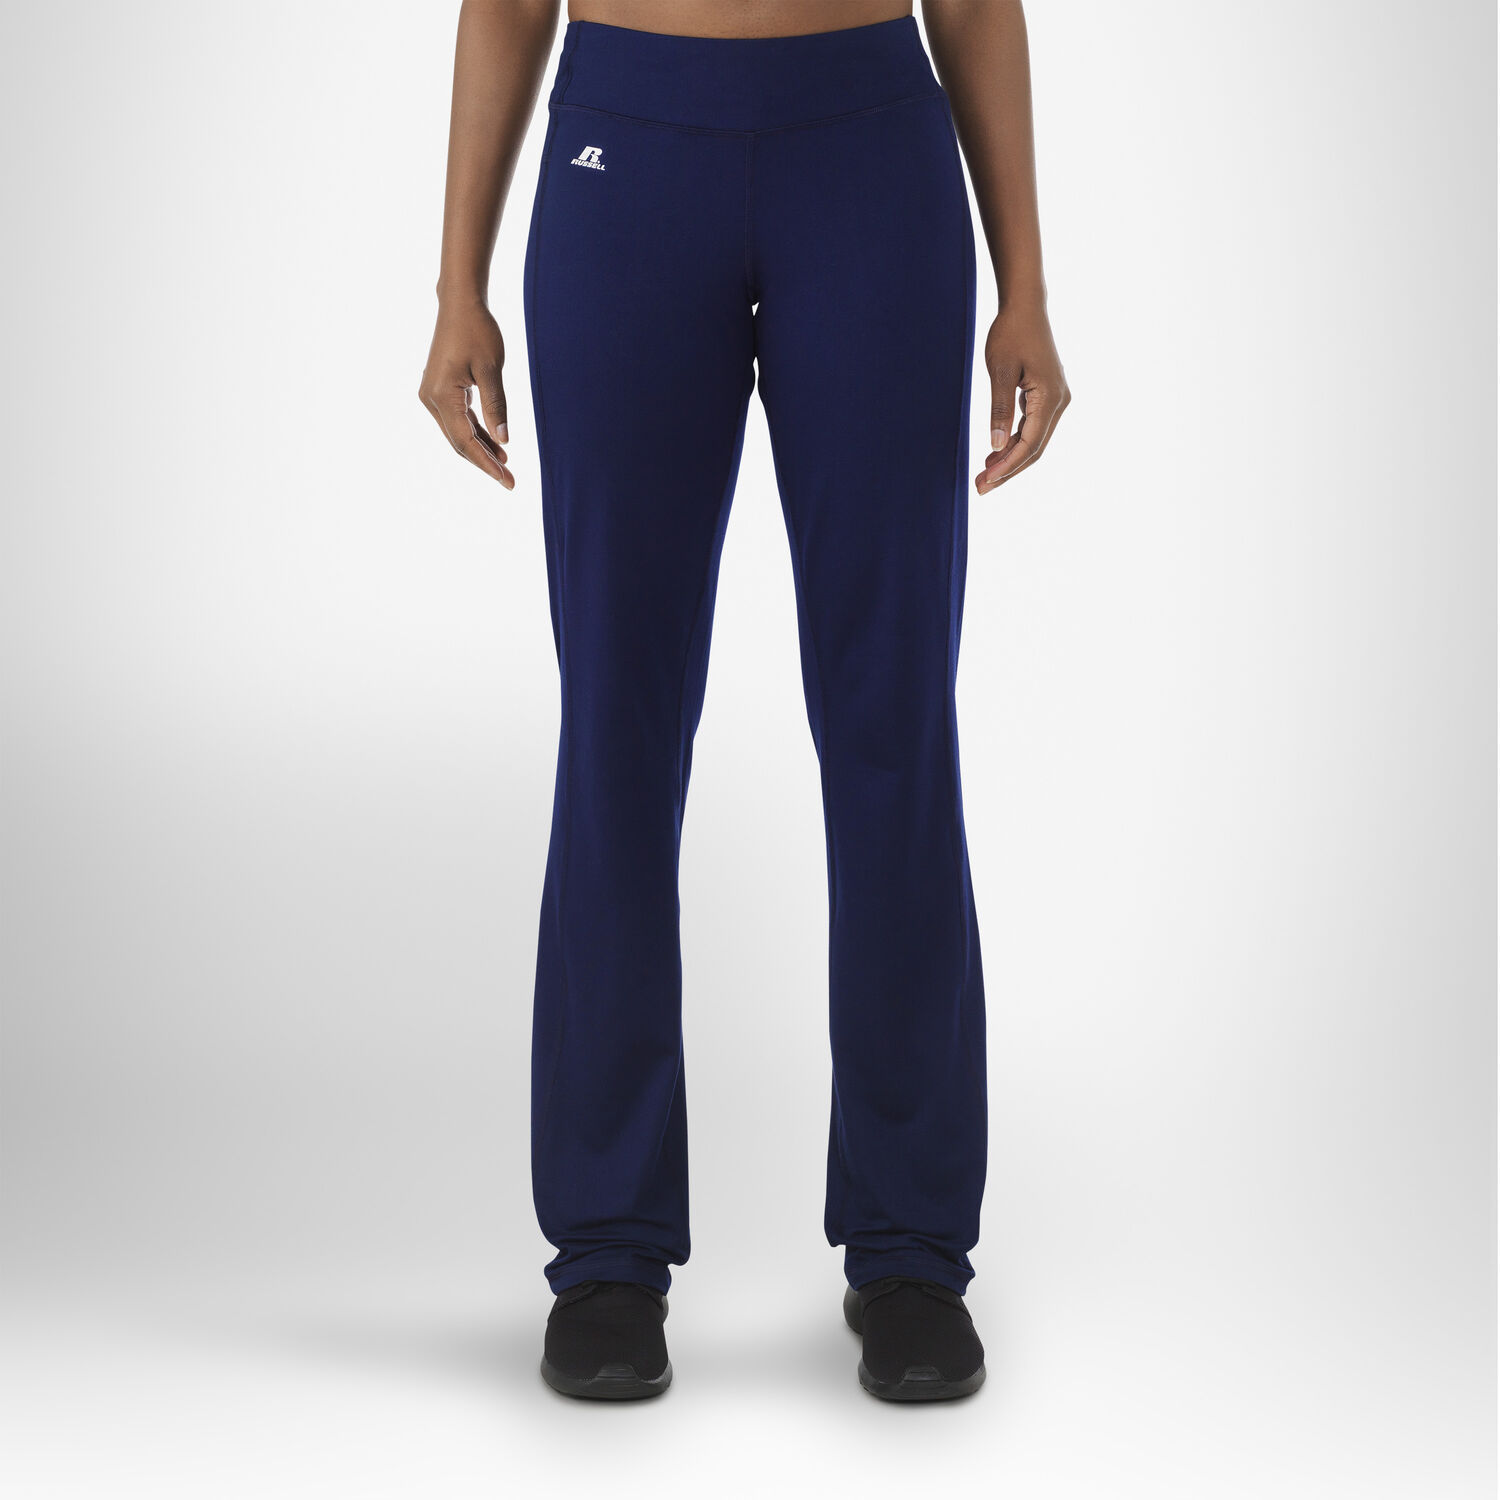 848e03f7acf97 Women's Performance Bootcut Yoga Pants - Russell US | Russell Athletic